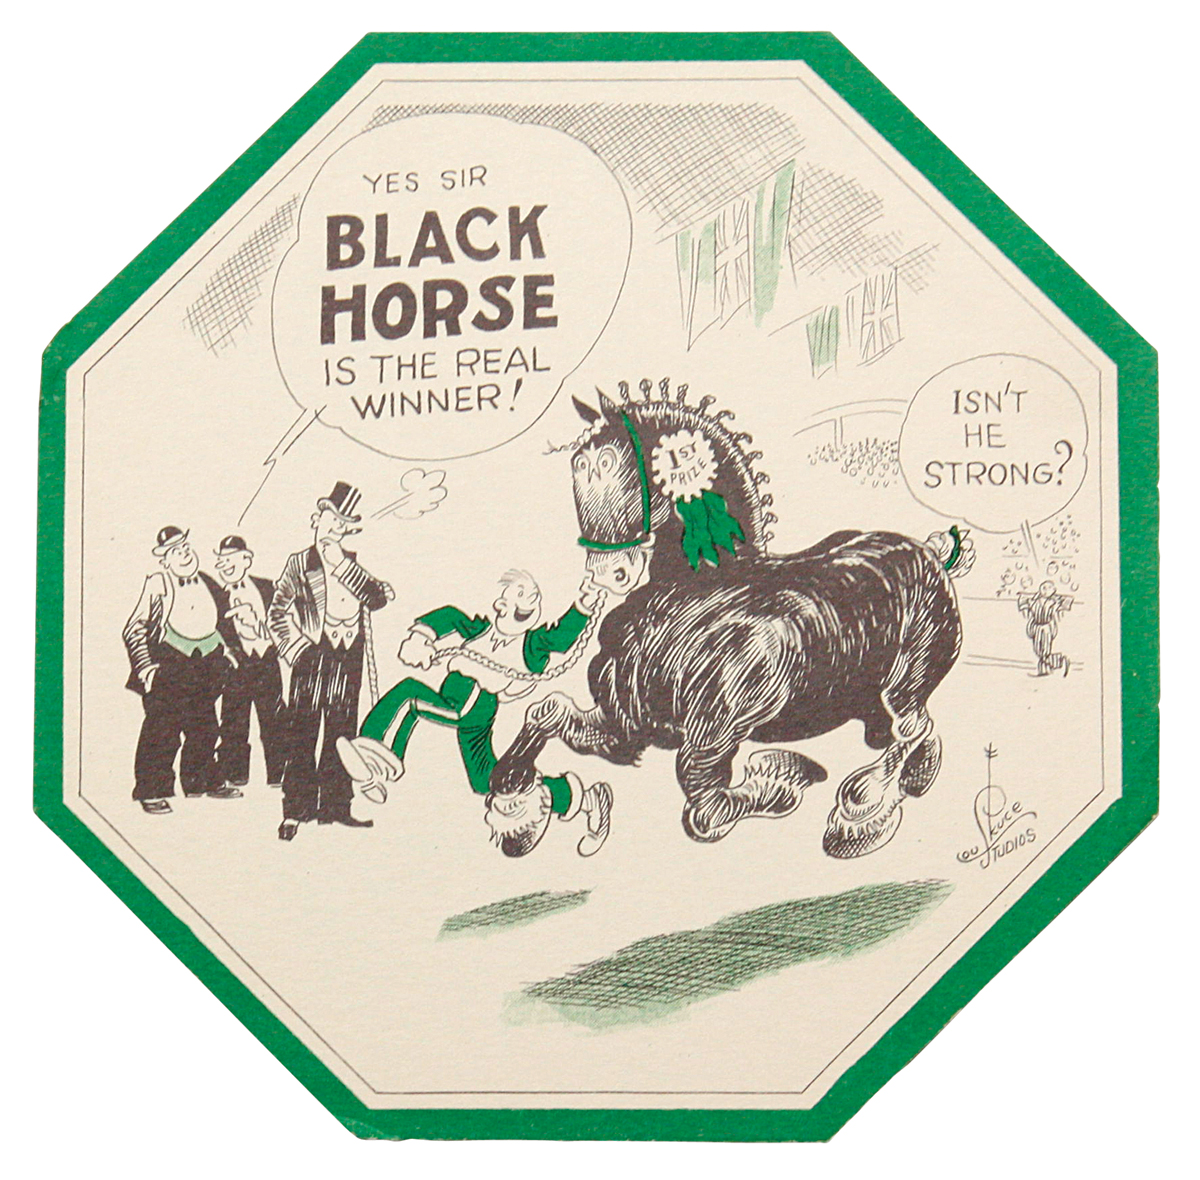 Photo of Black Horse coaster by Lou Skuce